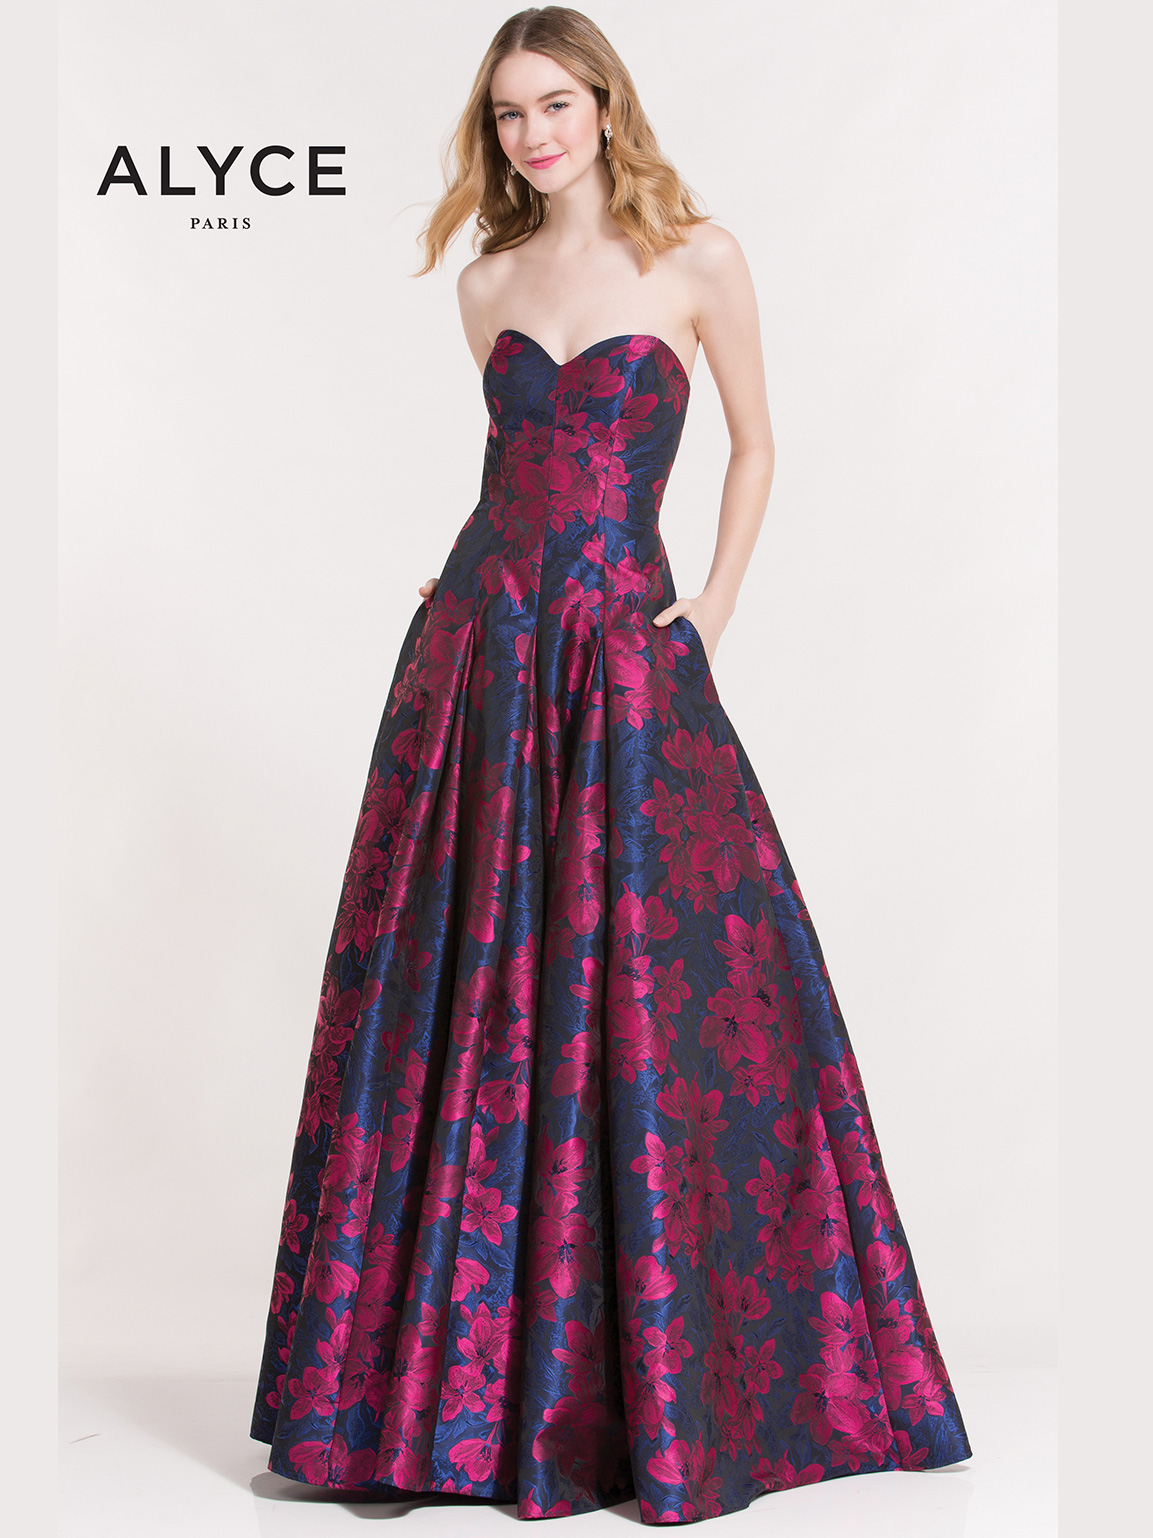 Alyce Paris 7015 Sweetheart Ball Gown Prom Dress|DimitraDesigns.com